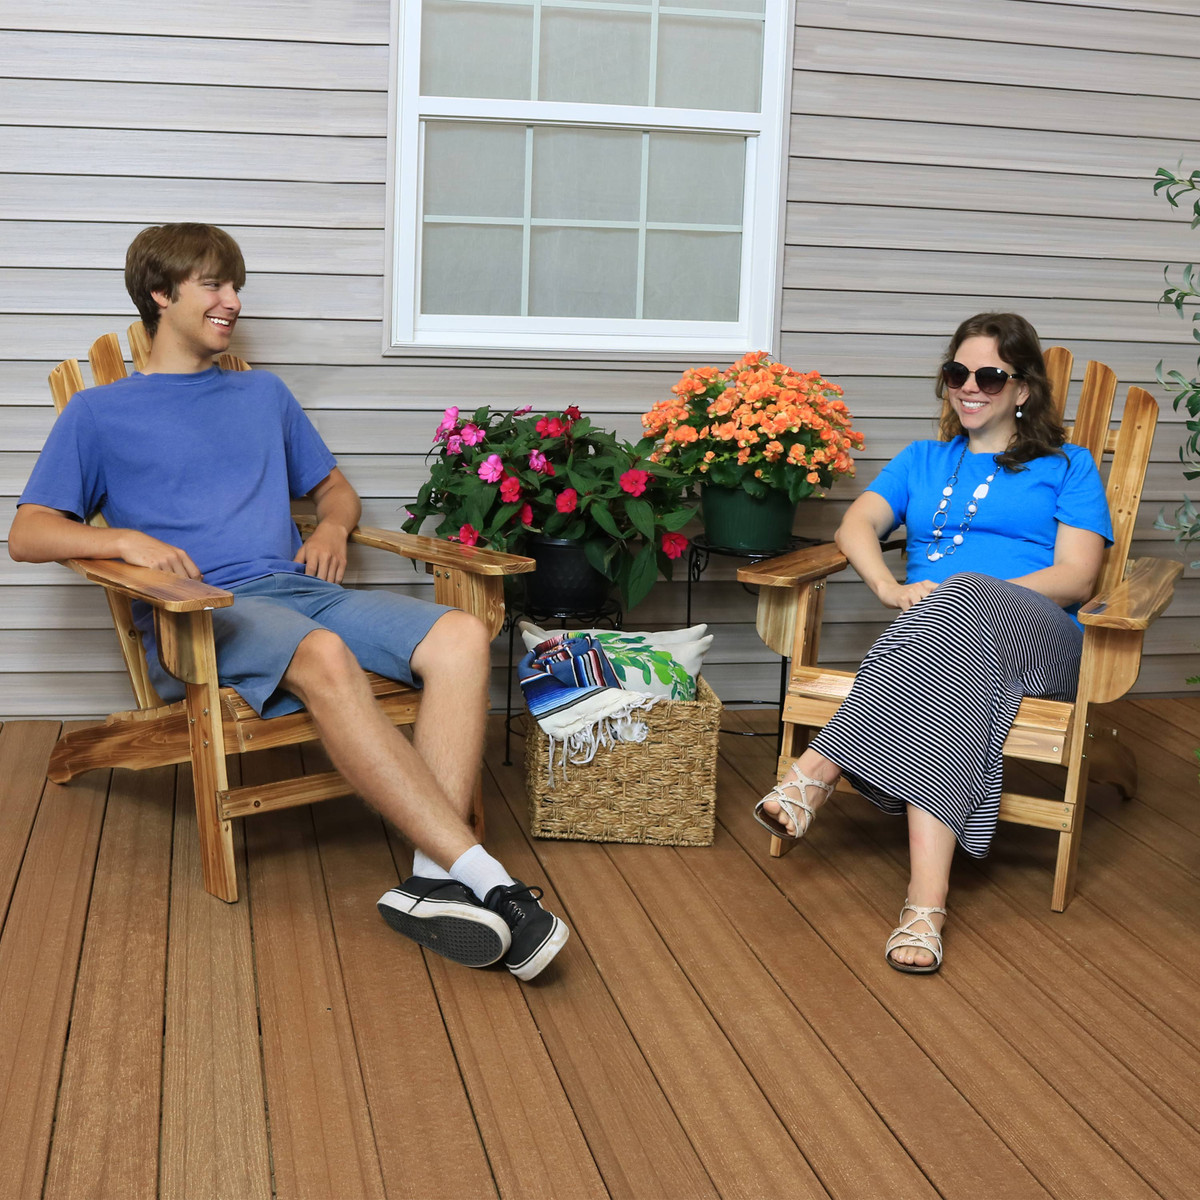 250-Pound Weight Capacity Sunnydaze Rustic Wooden Adirondack Chair with Light Charred Finish